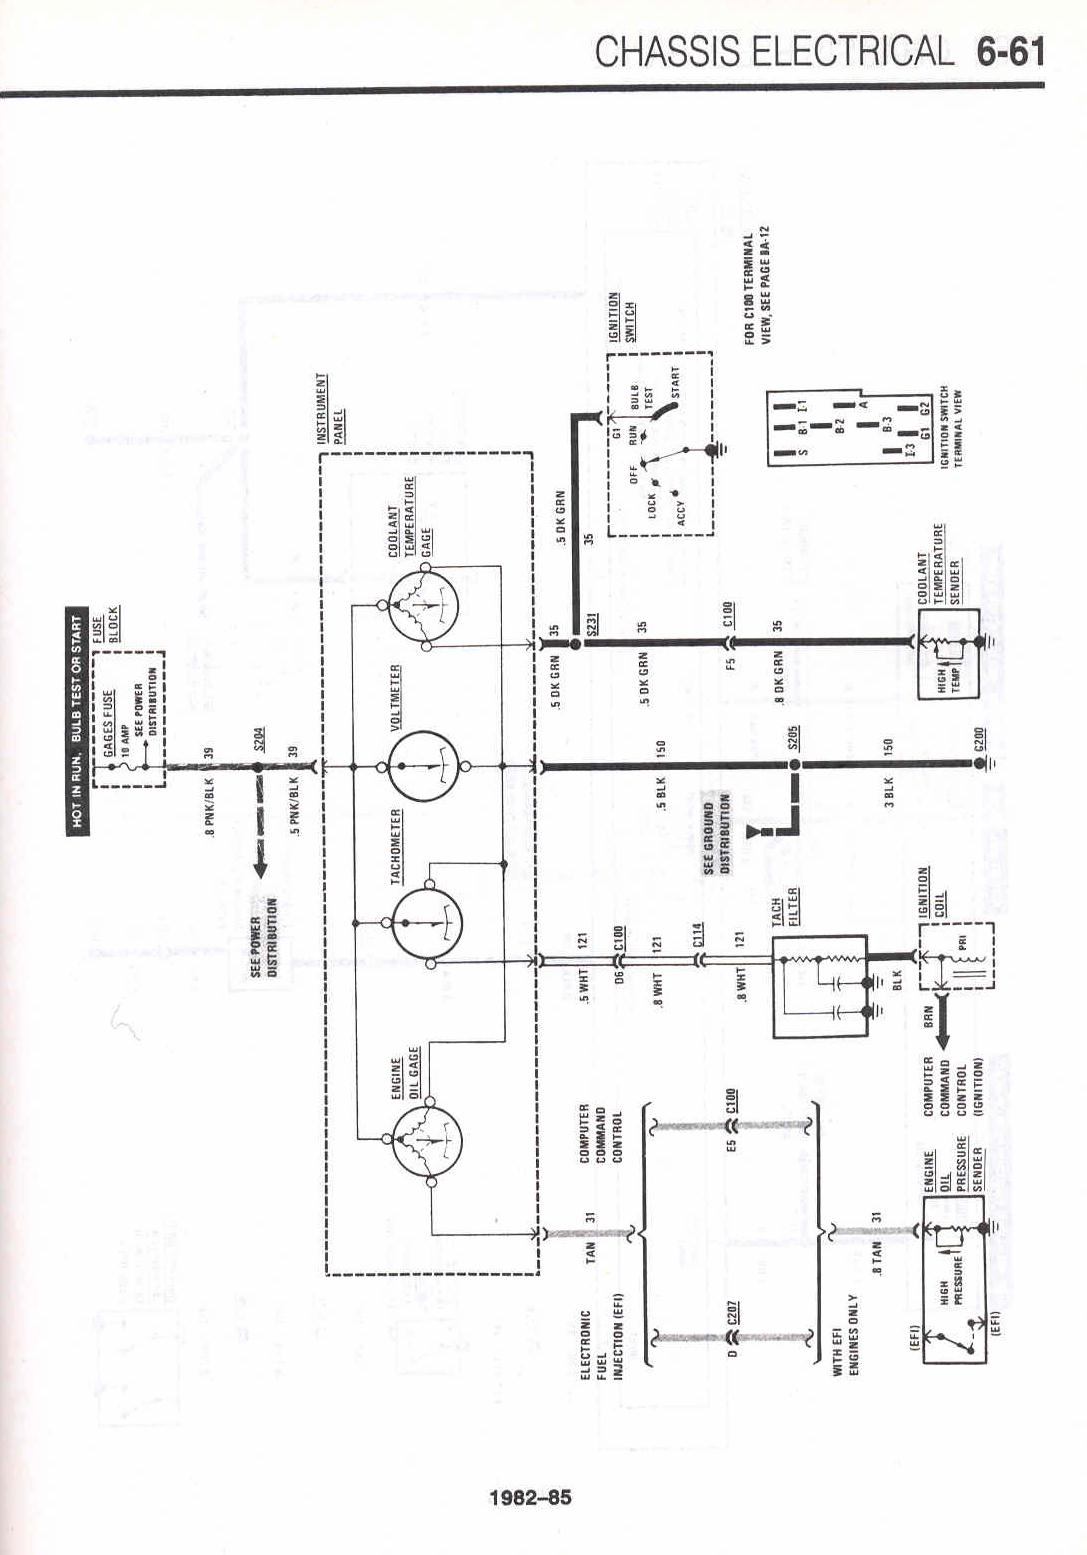 P28 Vtec Wiring - Ekya.hsm-intl.uk • Obd Wiring Diagram Firebird on pcm wiring diagram, light wiring diagram, vtec wiring diagram, vafc2 wiring diagram, obdii wiring diagram, crx wiring diagram, cars wiring diagram, obd0 wiring diagram, engine wiring diagram, automotive wiring diagram, ecu wiring diagram, 351 cleveland wiring diagram, ford wiring diagram, tpms wiring diagram, obd2a wiring diagram, 2jz wiring diagram, honda wiring diagram, civic wiring diagram, bosch wiring diagram, obd2 wiring diagram,